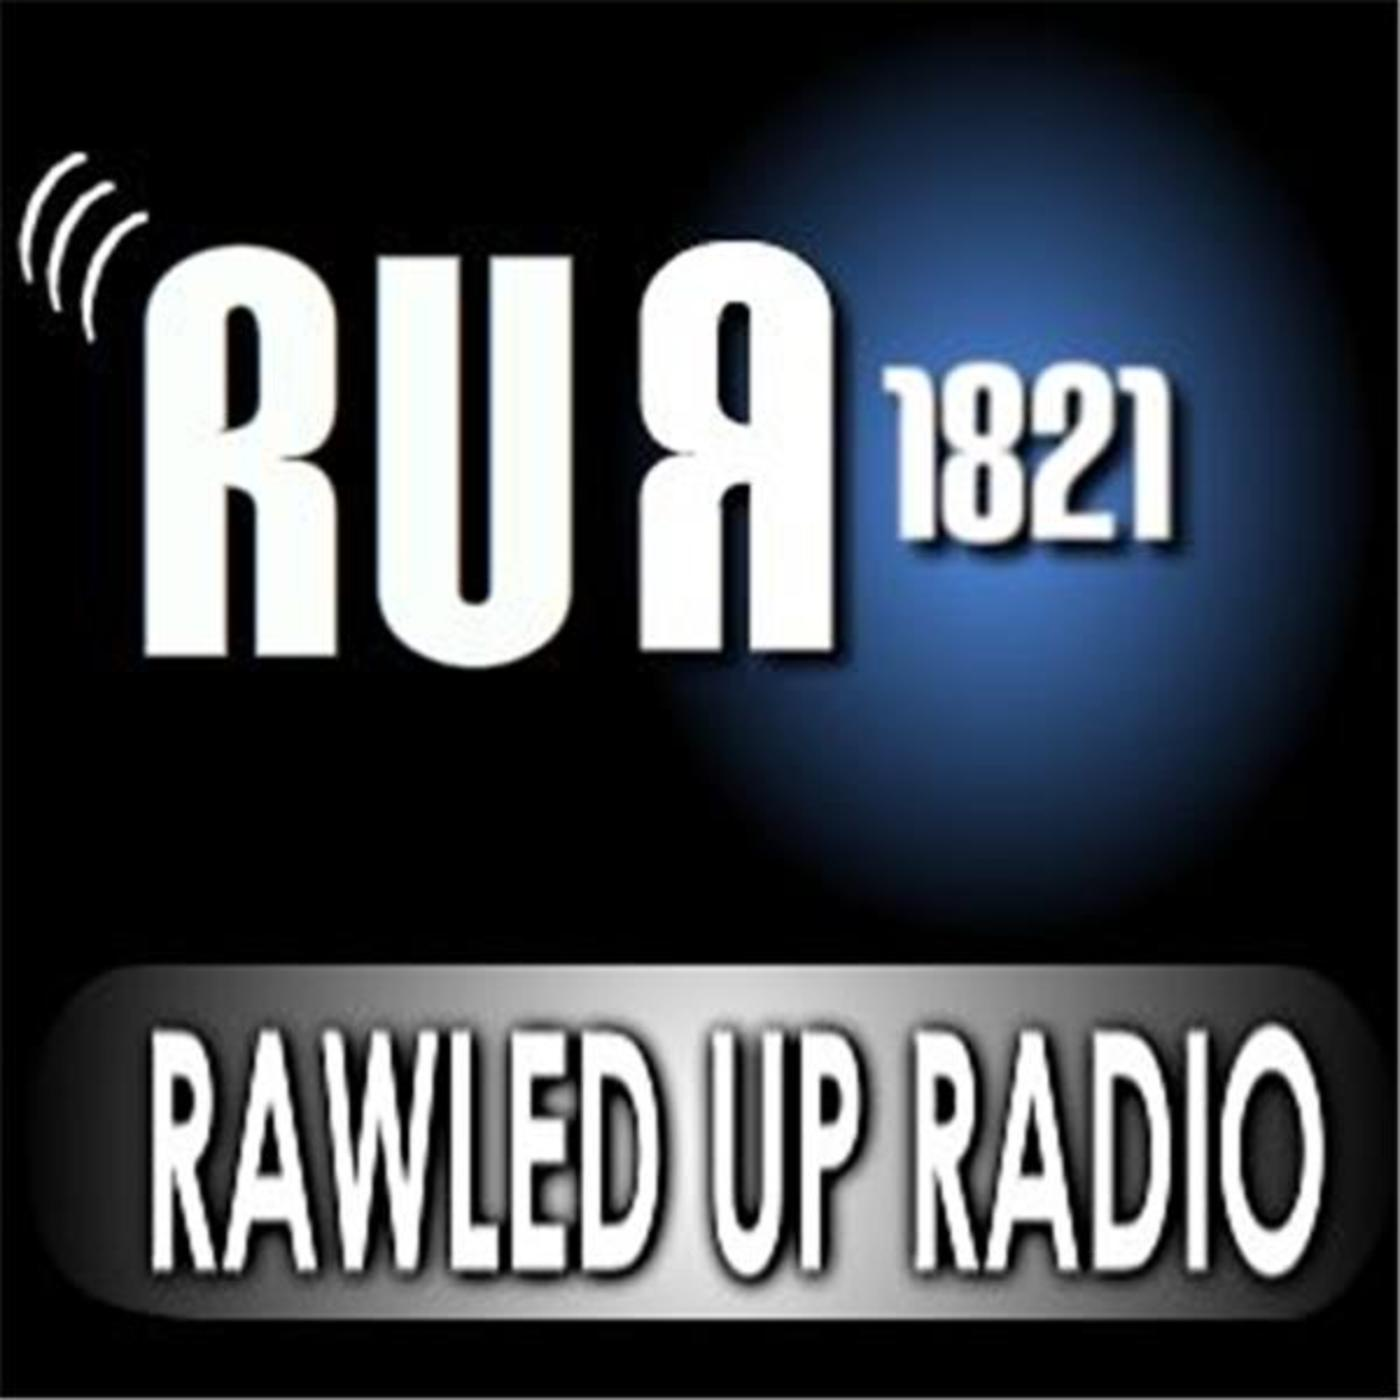 RAWLED UP RADIO